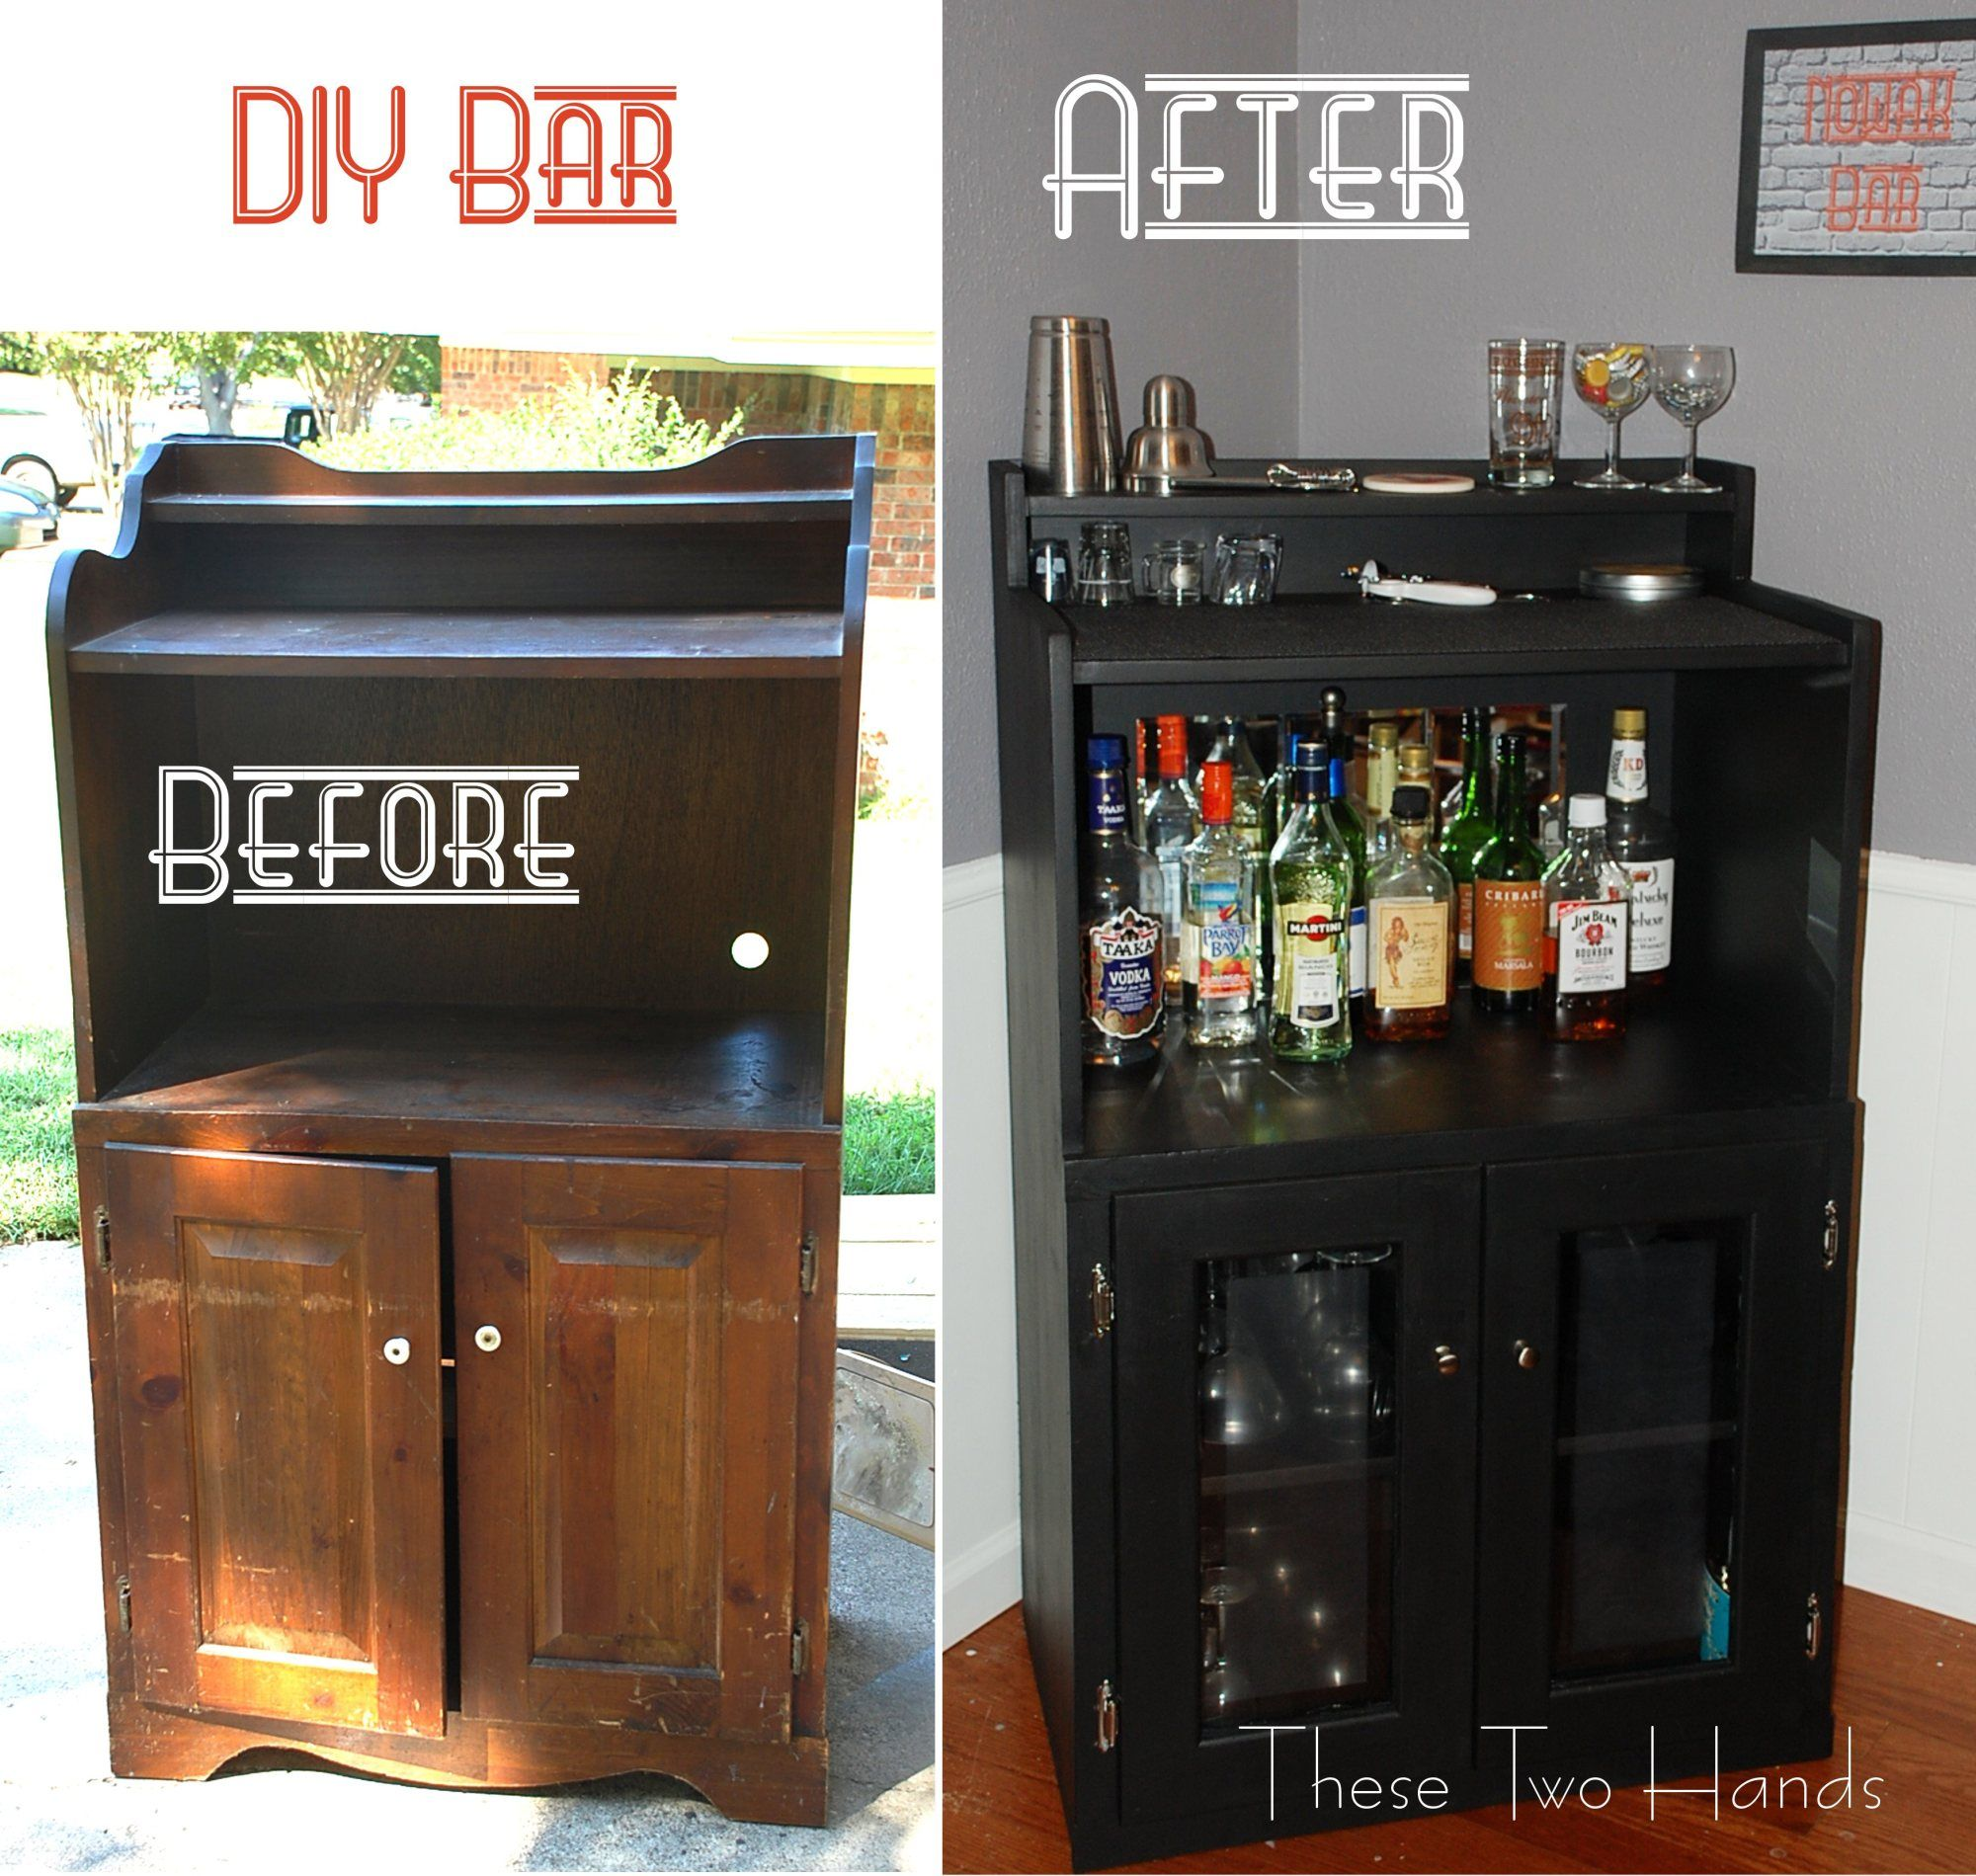 Diy Bar Perfect Since We Have An Old Microwave Cabinet Mini Fridge Where Doors Are Pain It Etc